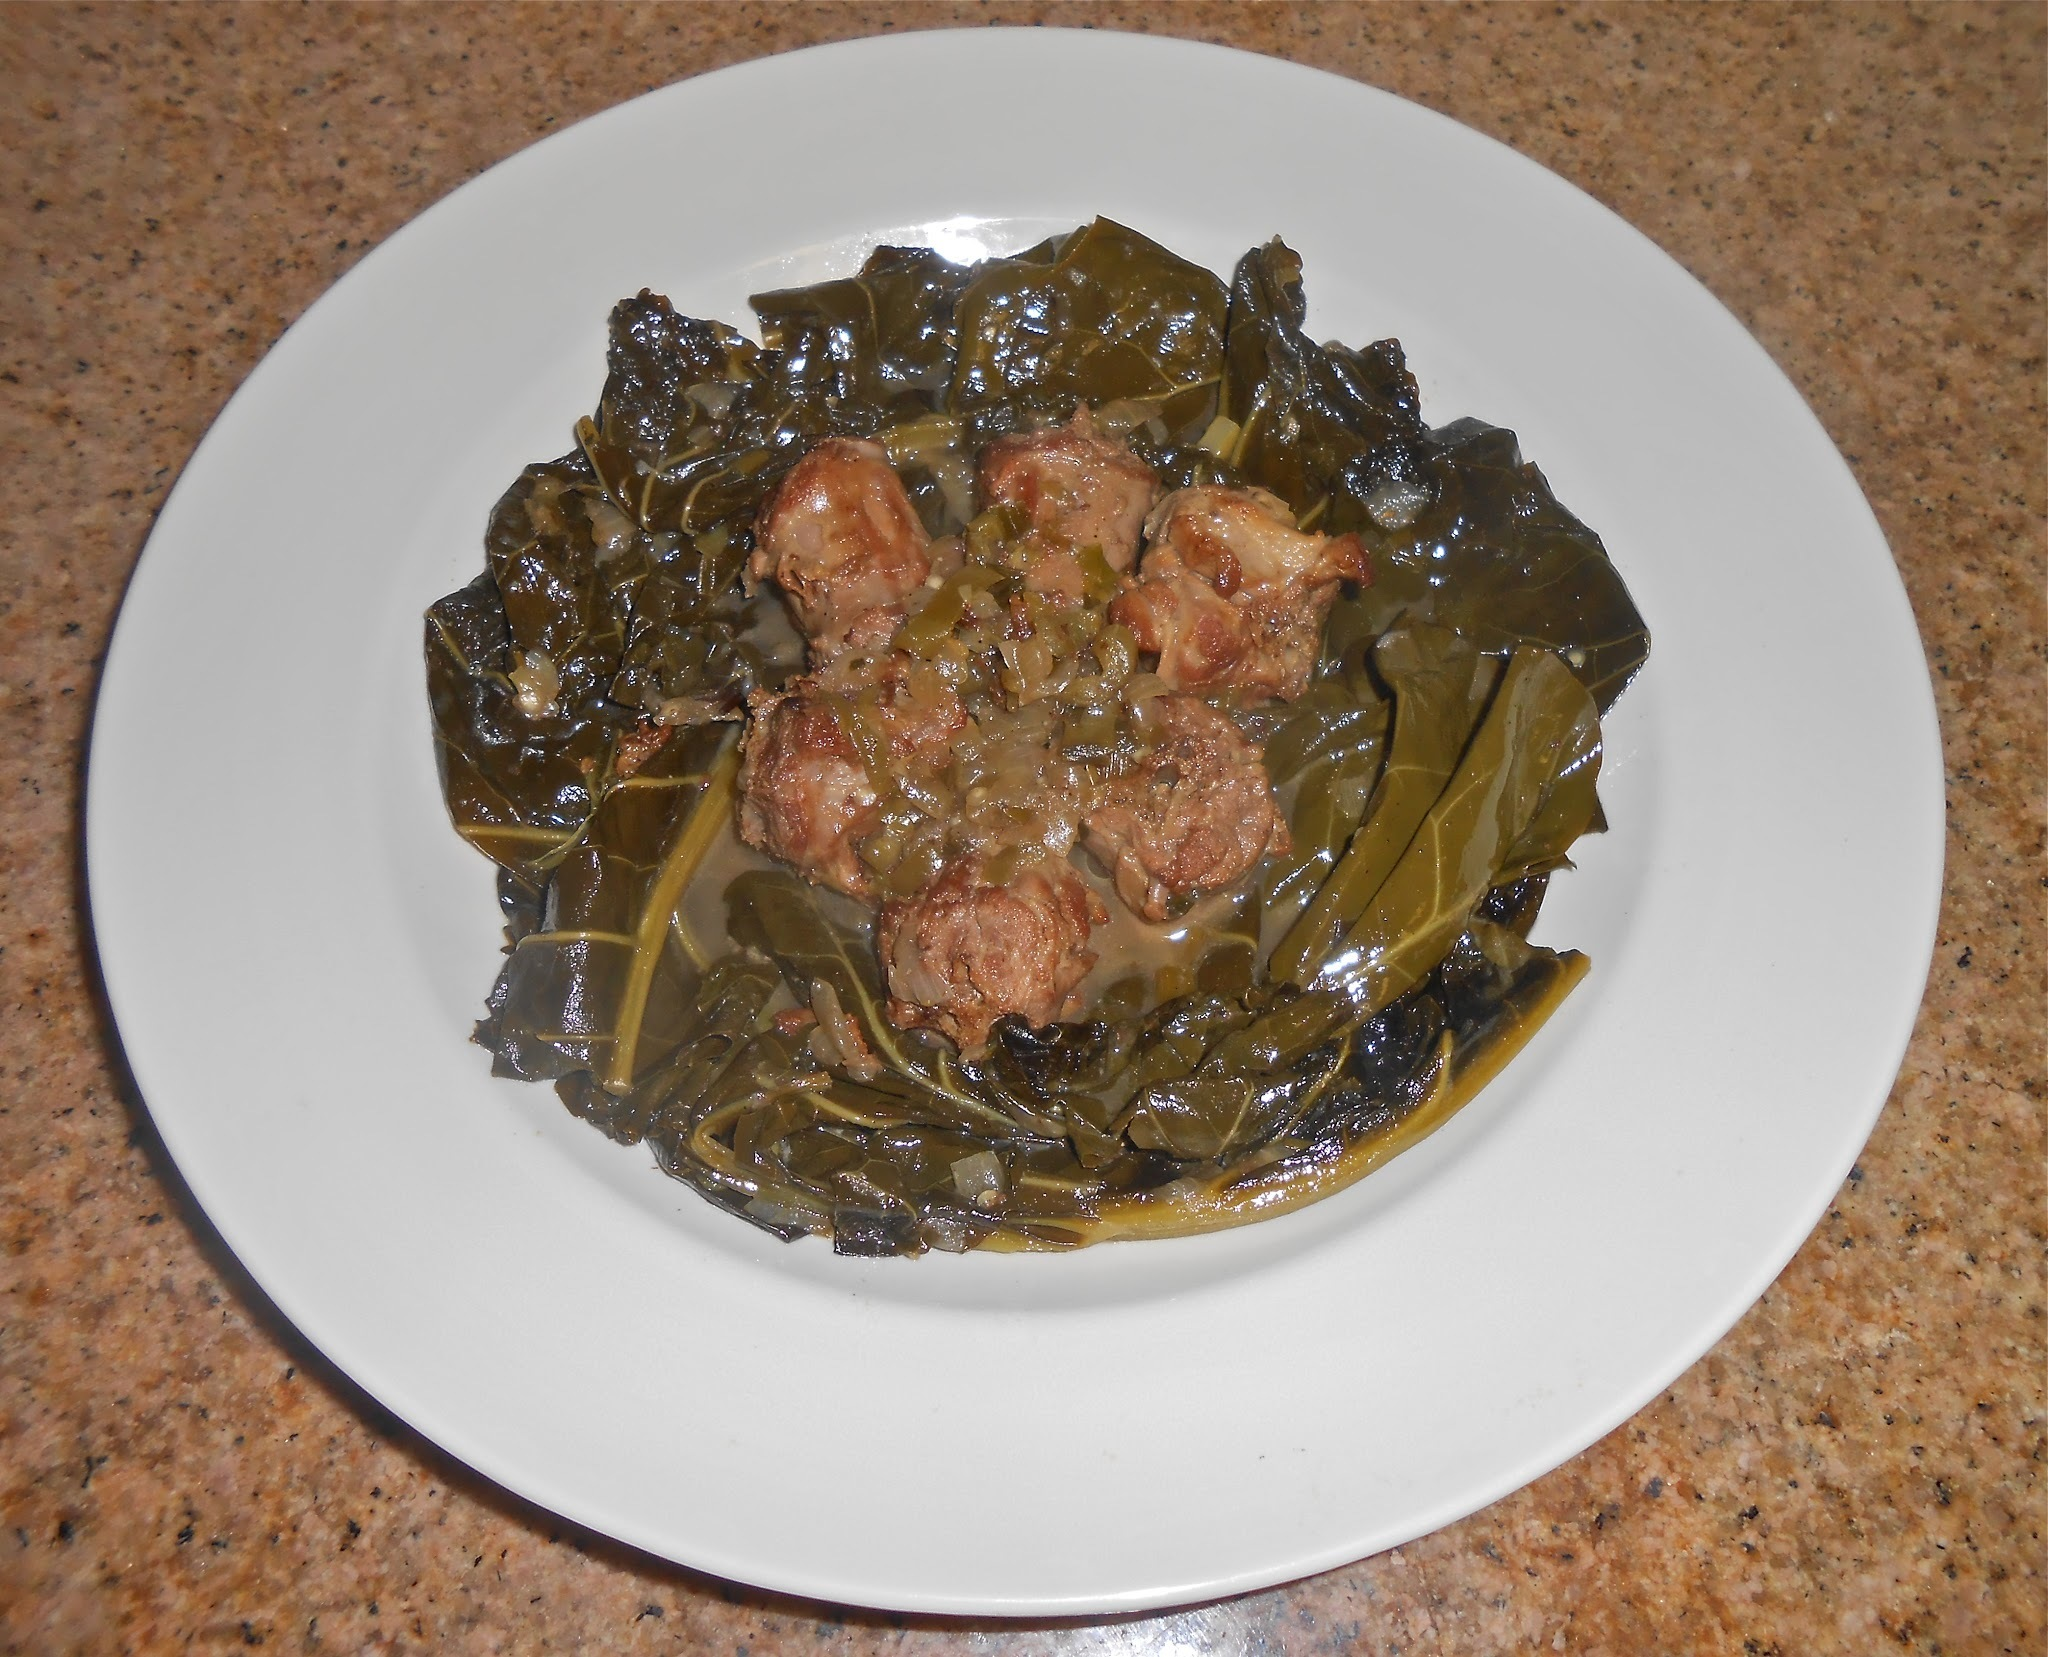 Collard Greens and Turkey Neck Bones with Pot Liquor!  Soul Food!